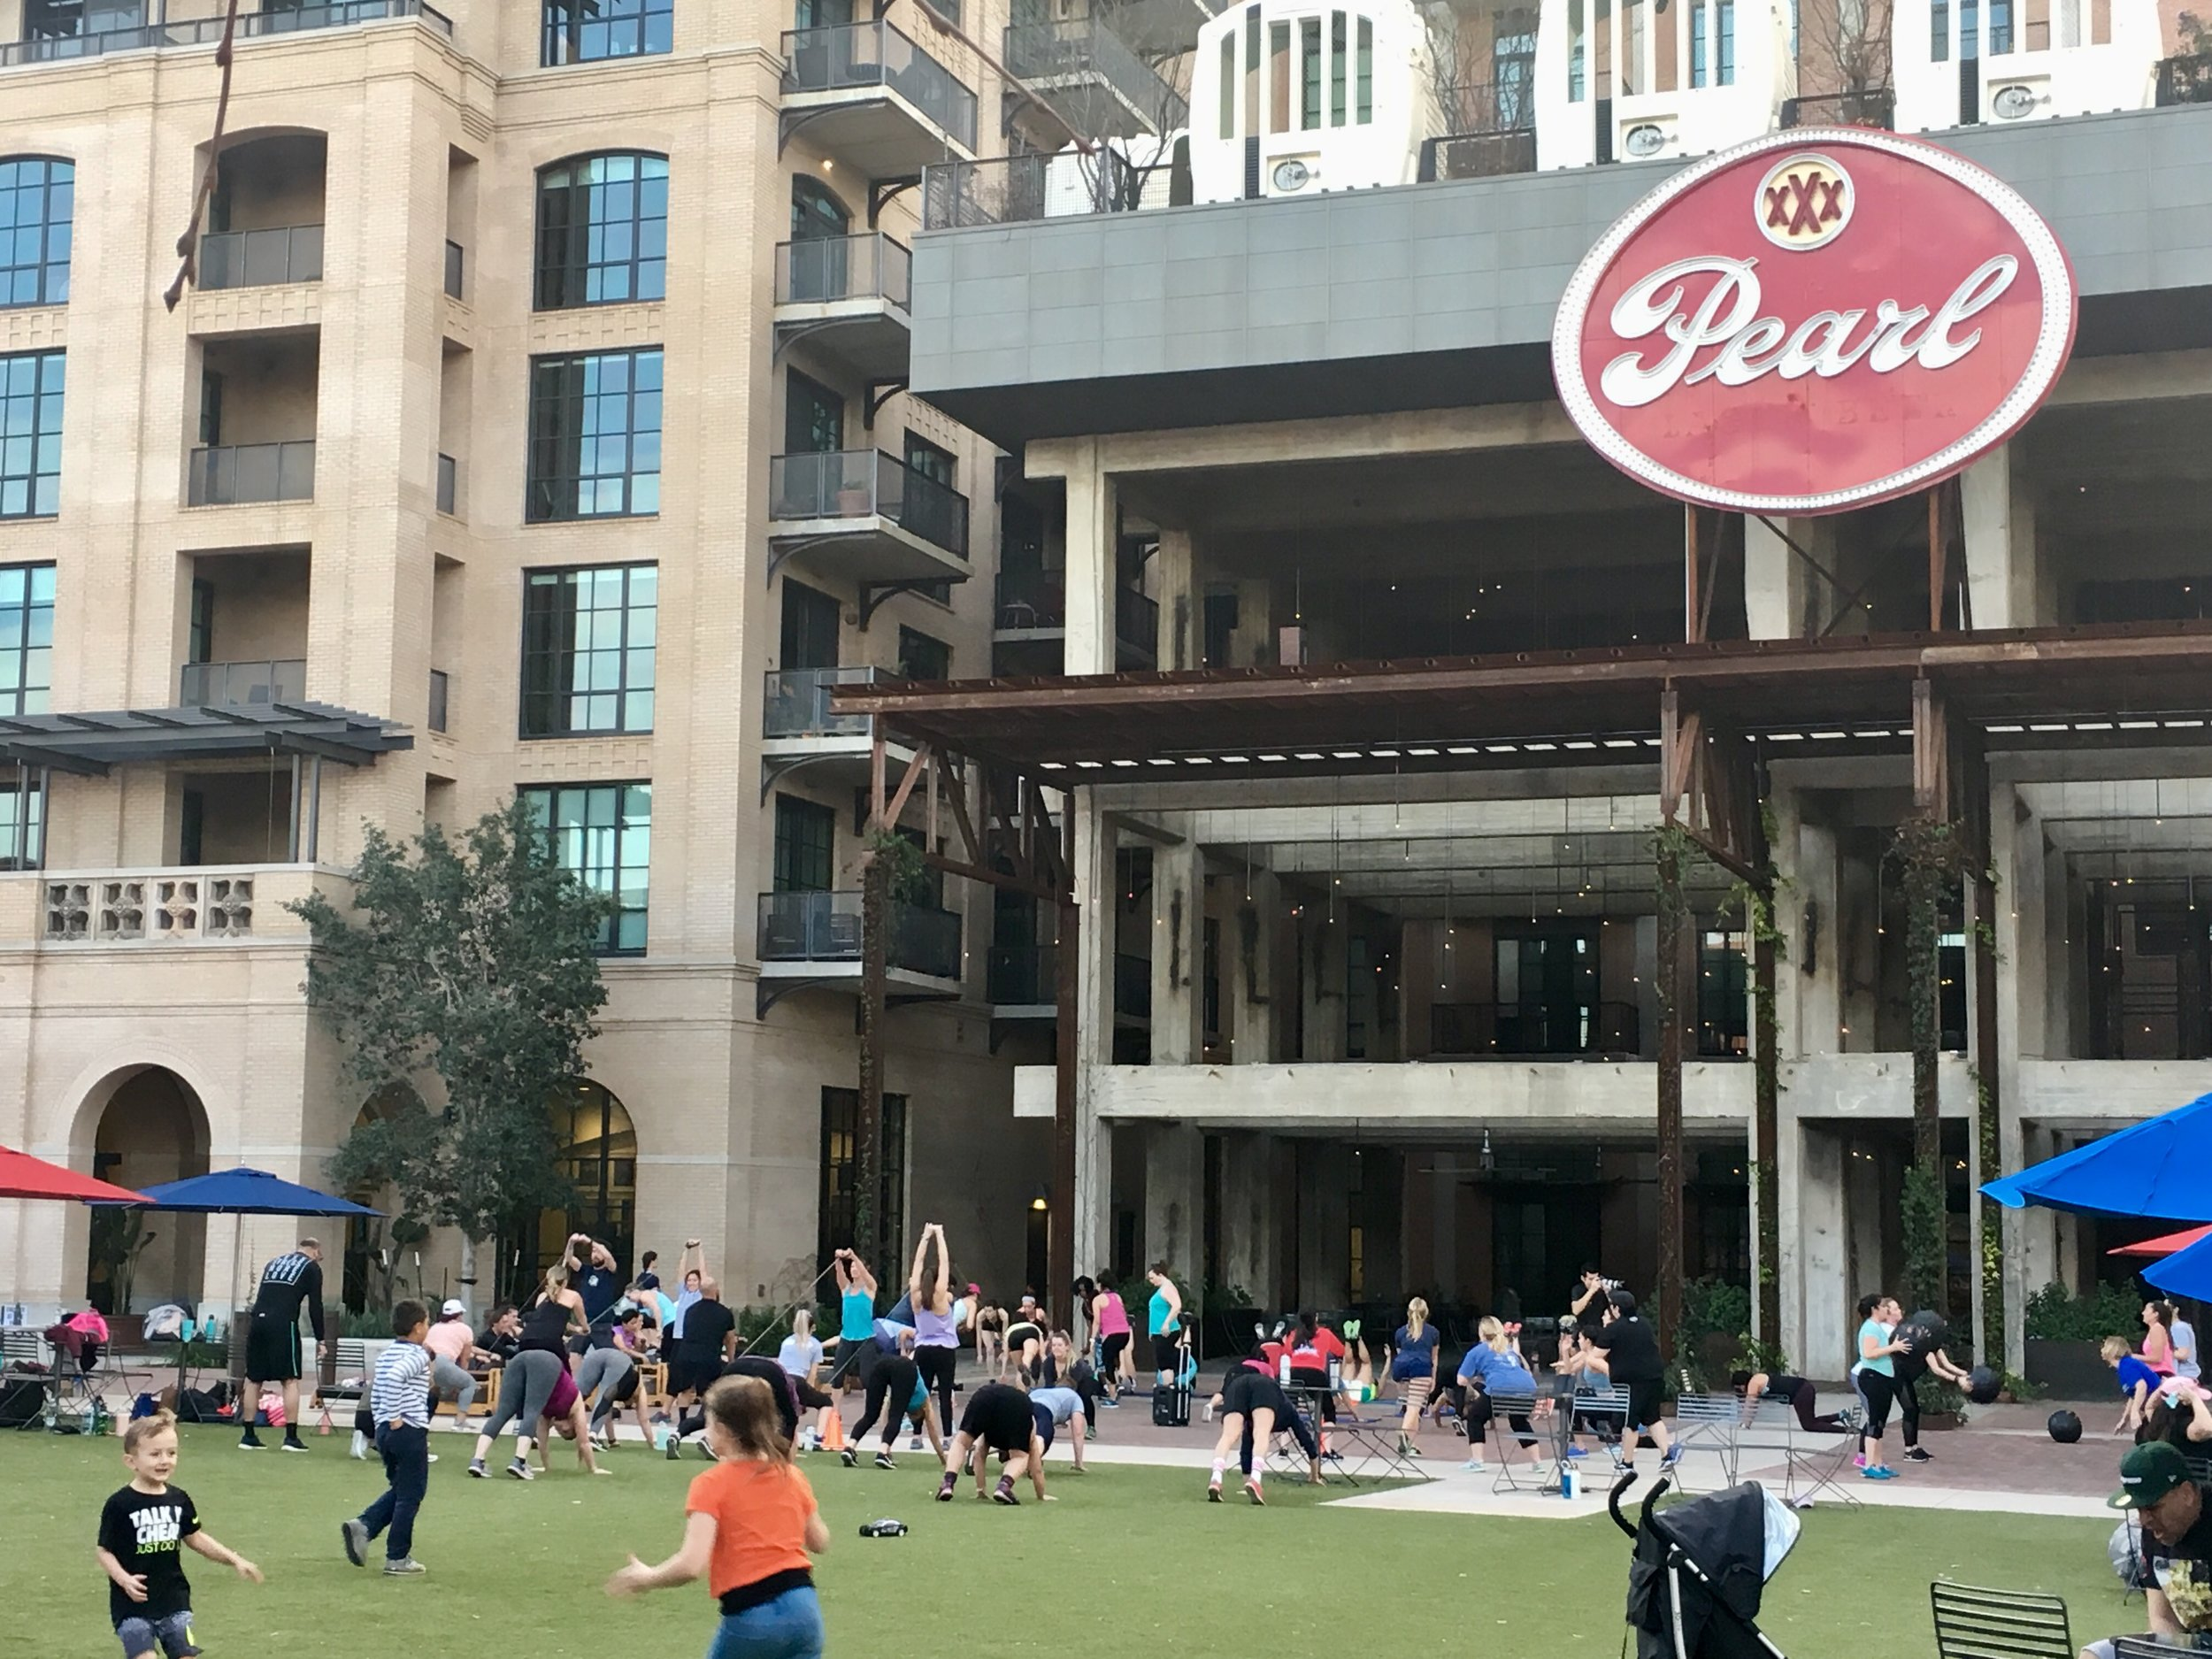 The Pearl Brewery open space provides space for a group exercise class.